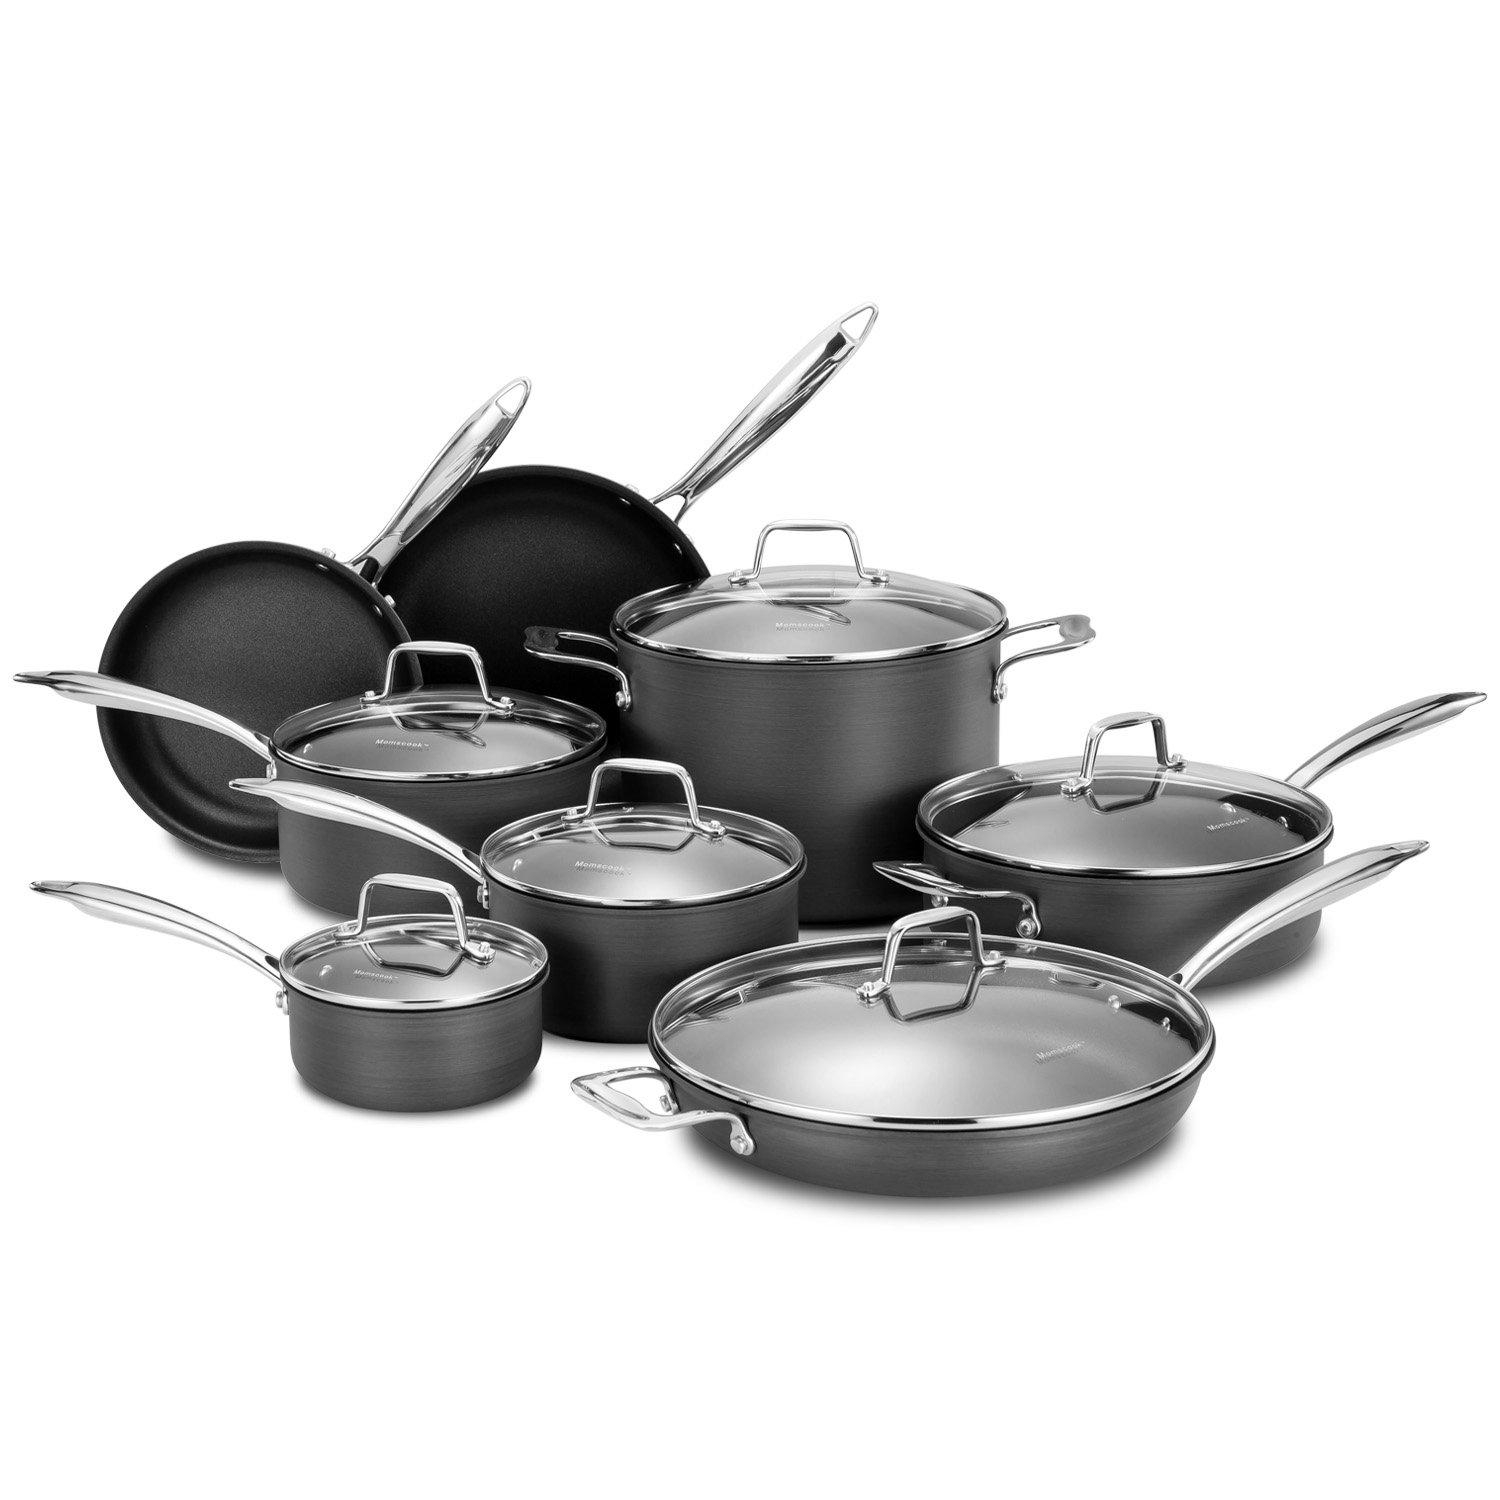 Momscook Nonstick Cookware Set Durable Hard-Anodized Aluminum Pots and Pans Set with Tempered-glass Lids, Oven Safe, 14-Piece